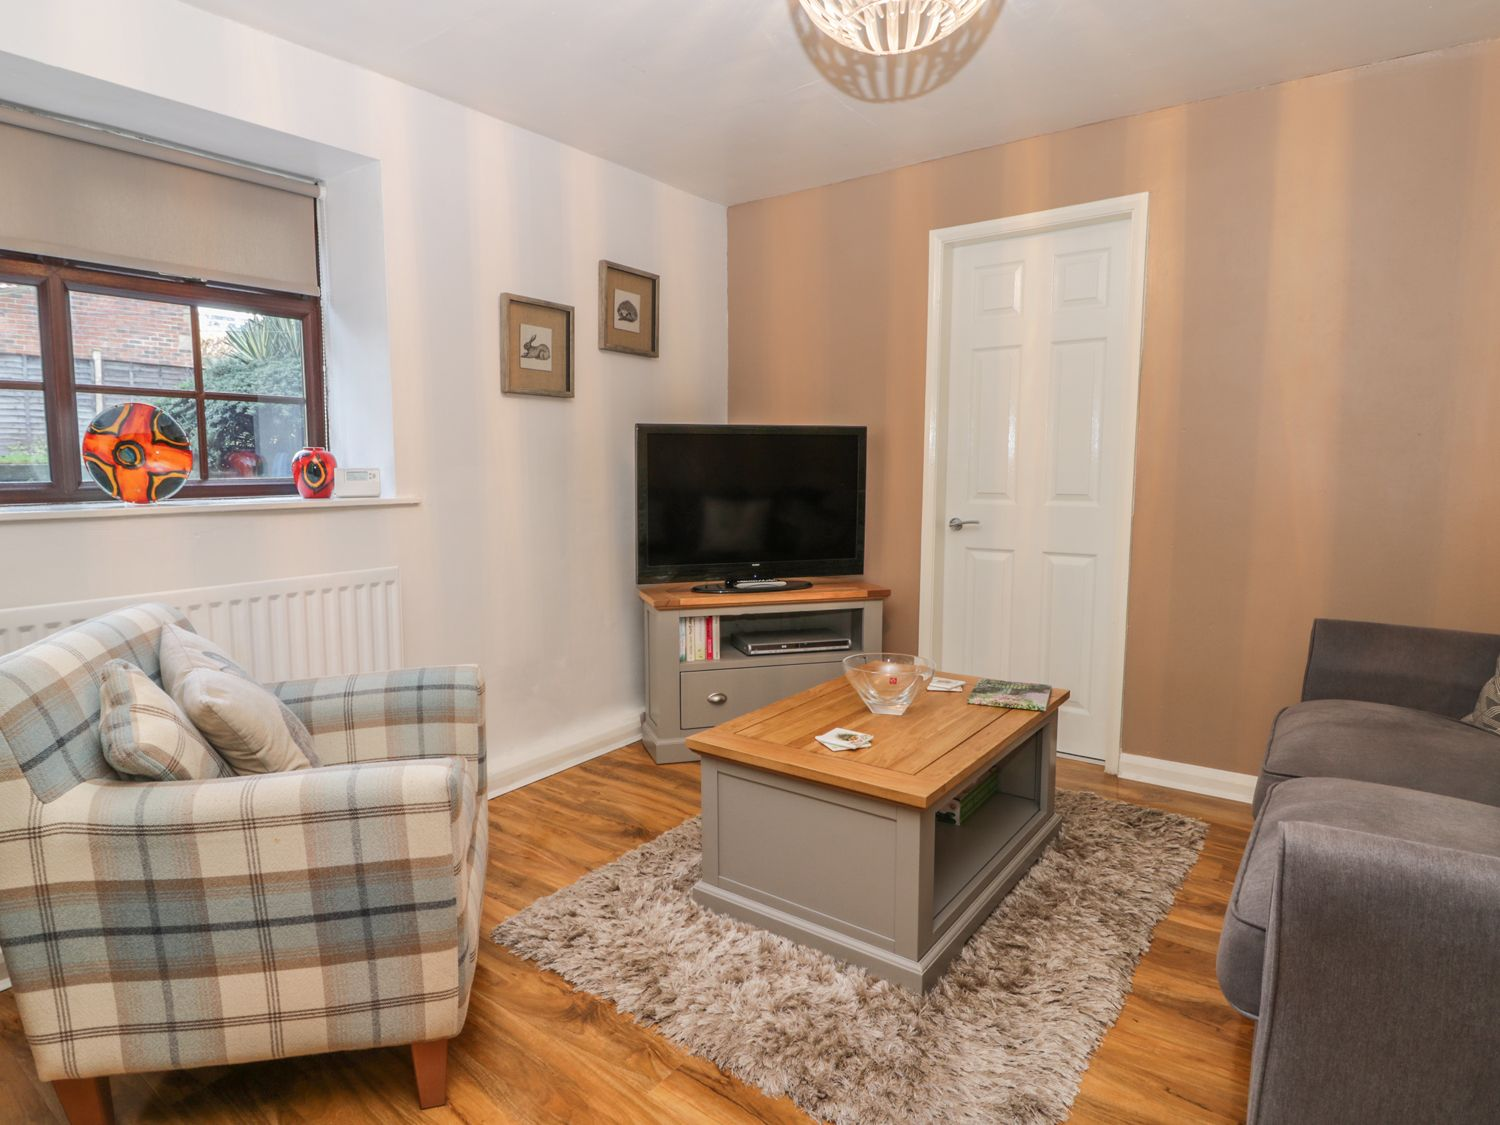 Glebe Hall Apartment, Marske-by-the-Sea